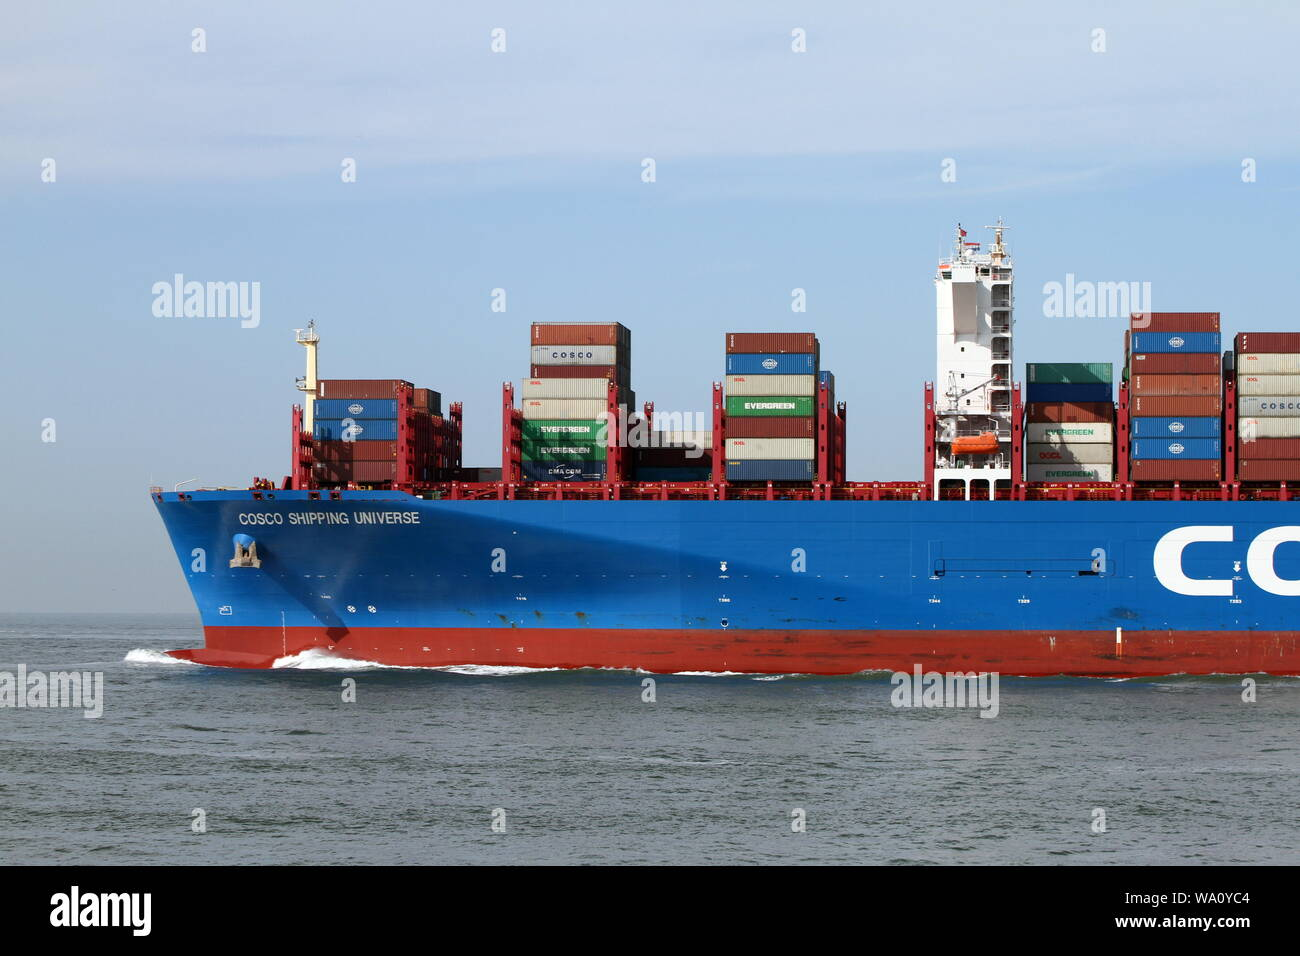 Cosco Shipping Stock Photos & Cosco Shipping Stock Images